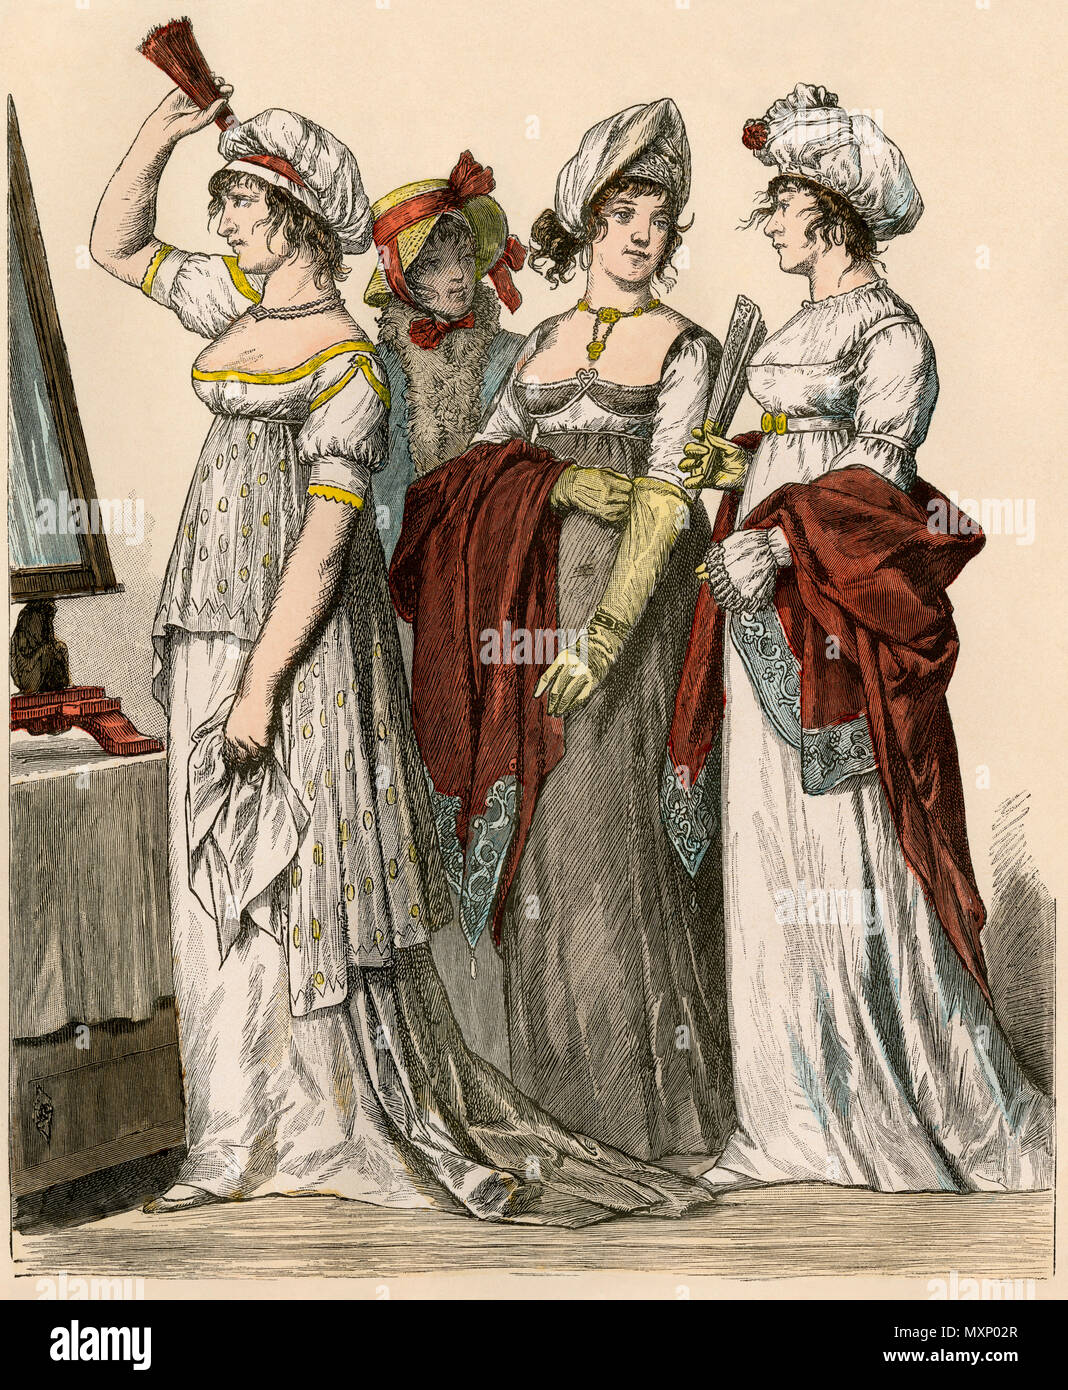 Le français et l'Allemand dames en robes de style Empire, 1802-1804. Impression couleur à la main Photo Stock